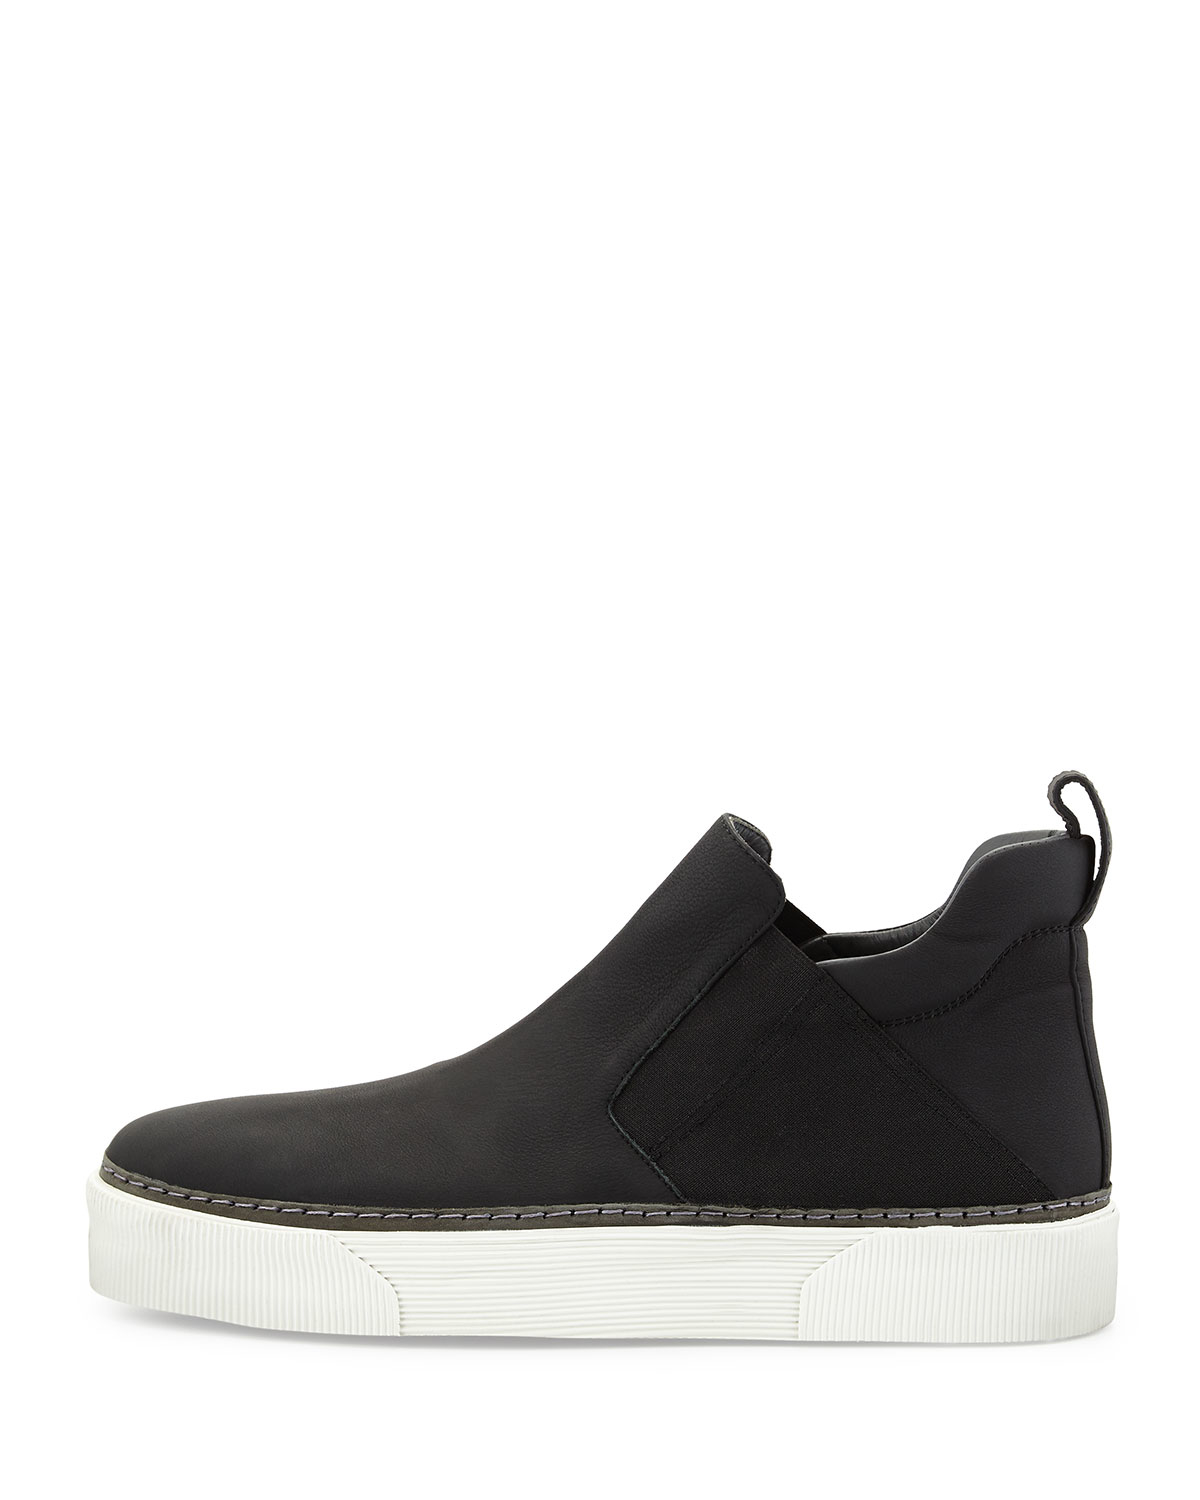 cb71c7eb01eb Lyst - Lanvin Leather High-top Slip-on Sneaker in Black for Men